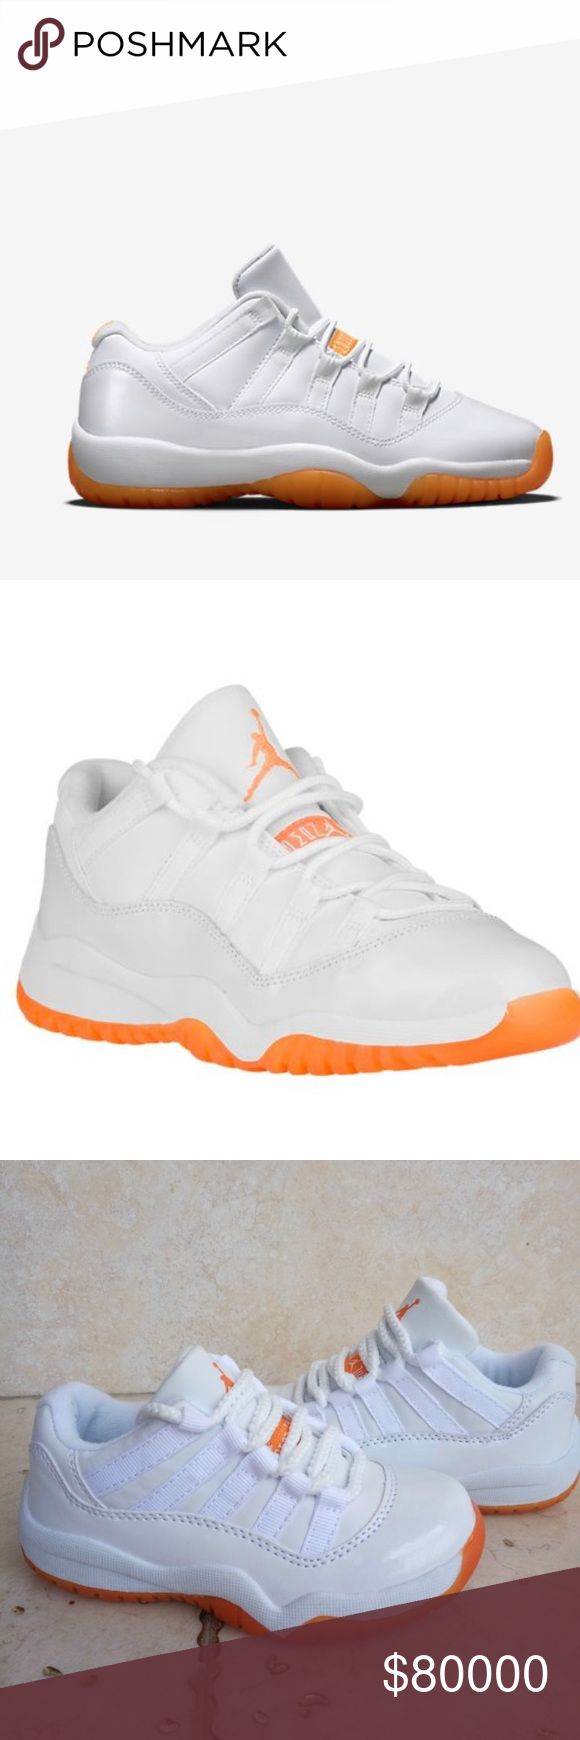 coming soon kids Air Jordan Citrus Retro Jordan 11 Coming soon Shoes Sneakers